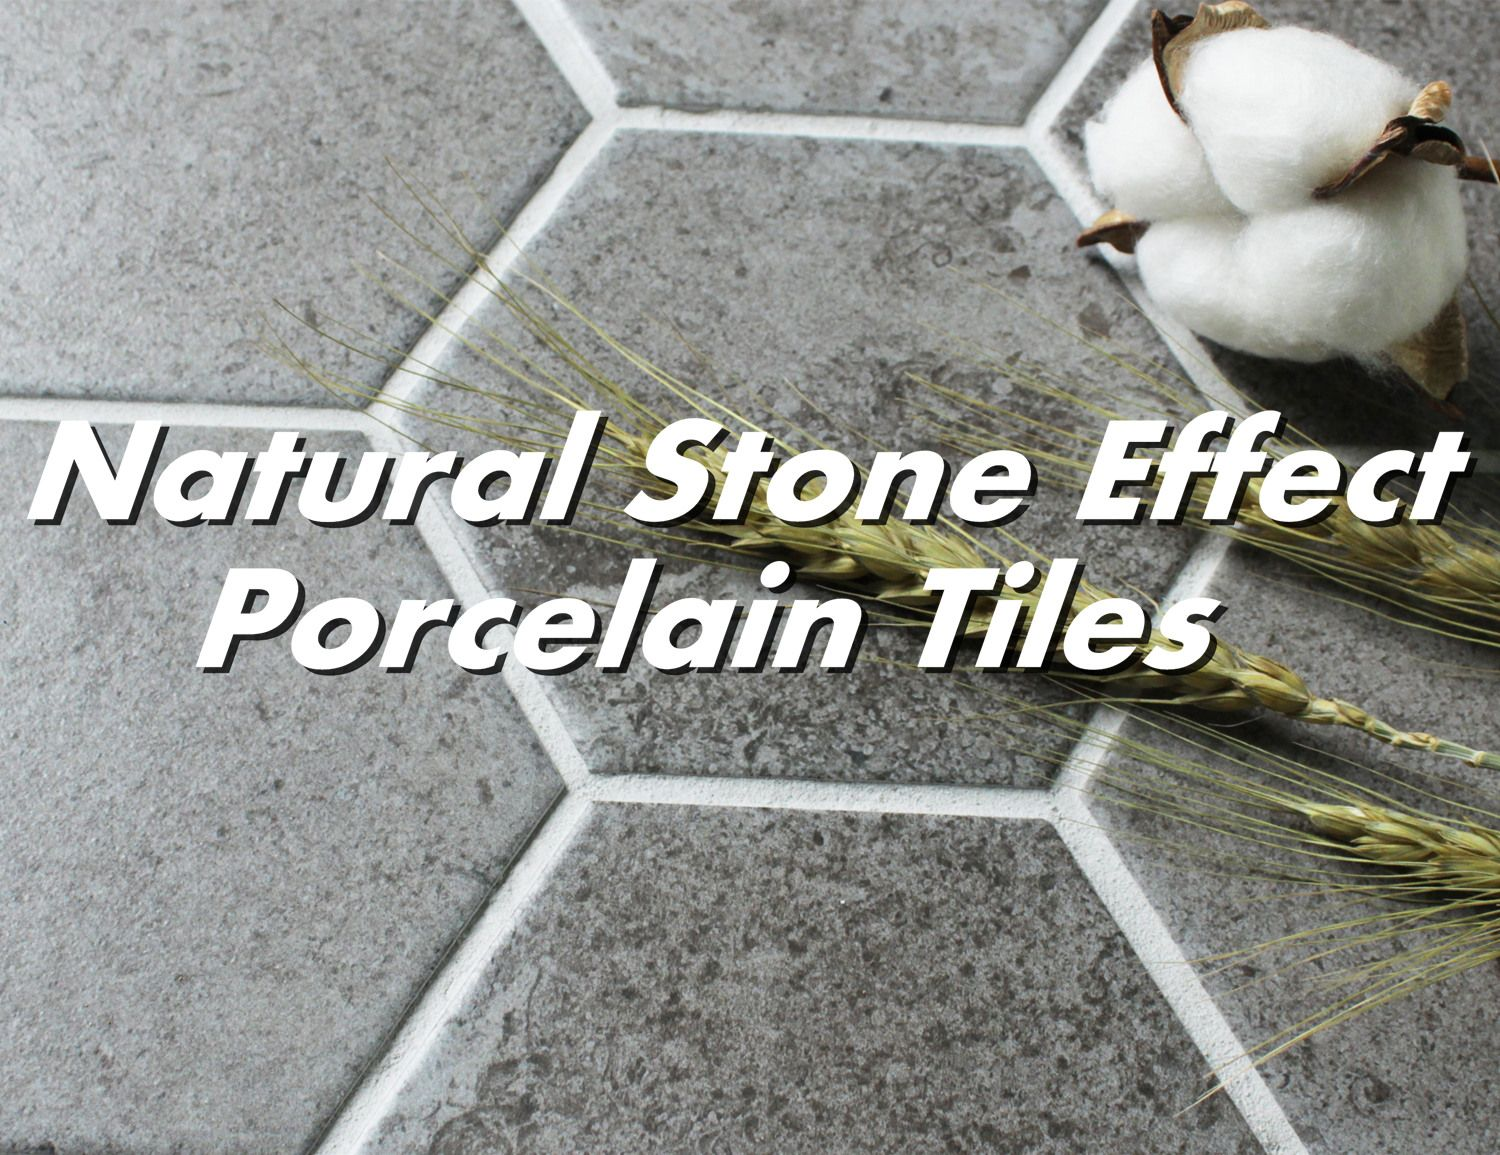 Best Choice of Natural Stone Effect Porcelain Tiles -Porcelain tile that looks like stone is a